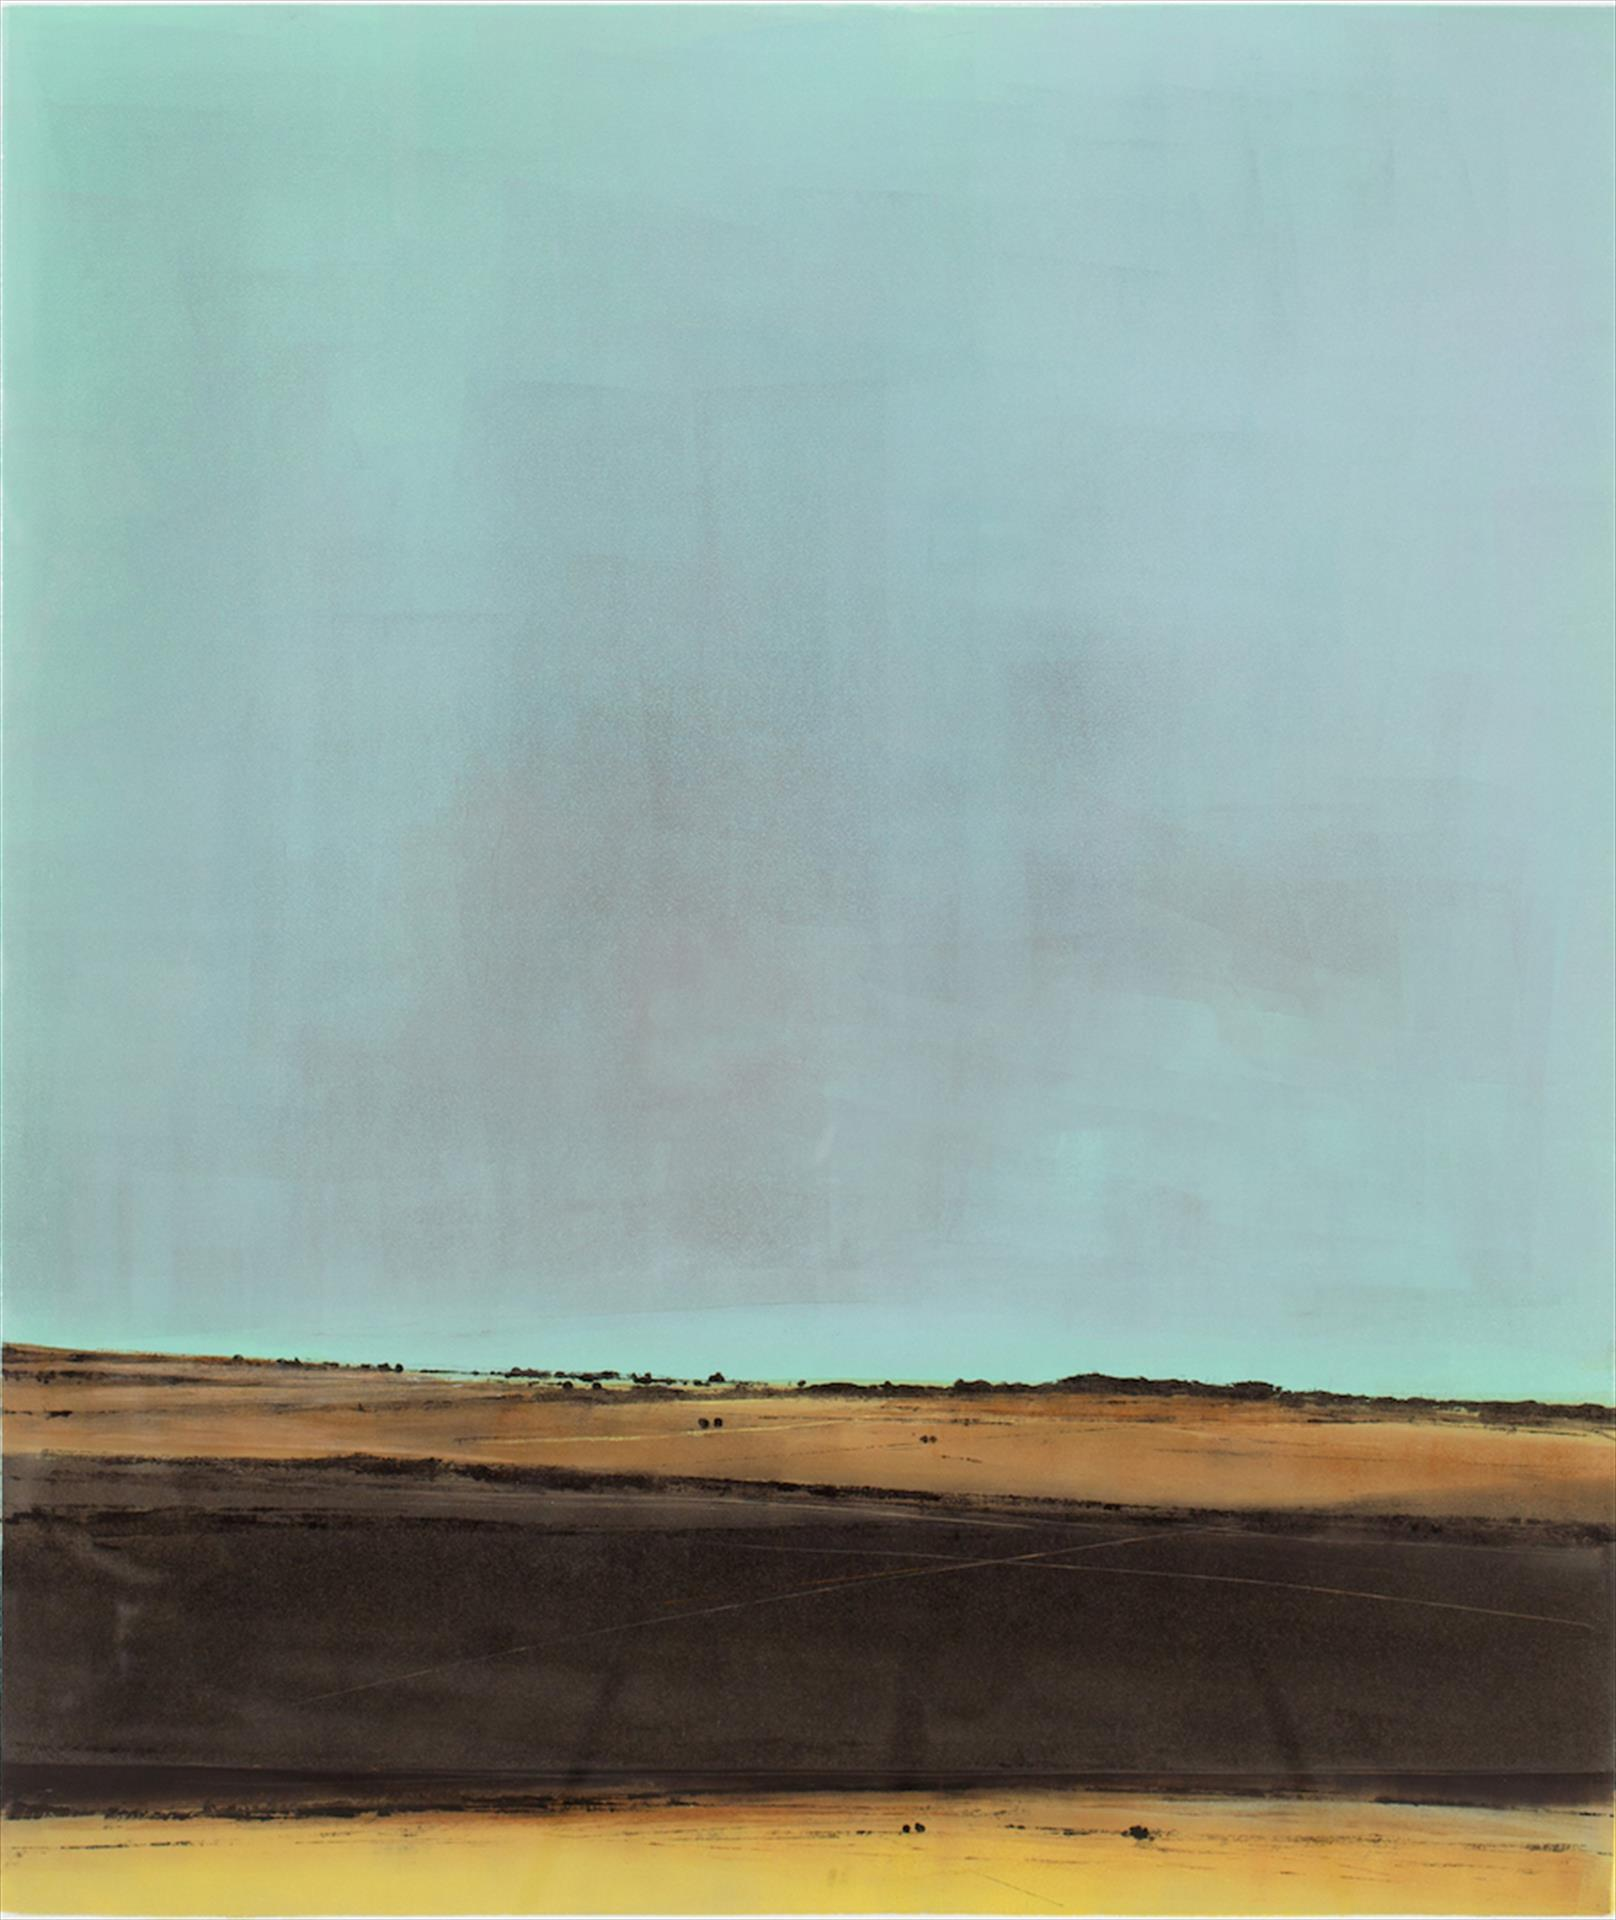 Annie Meyer, Eastern Oregon Landscape 2016